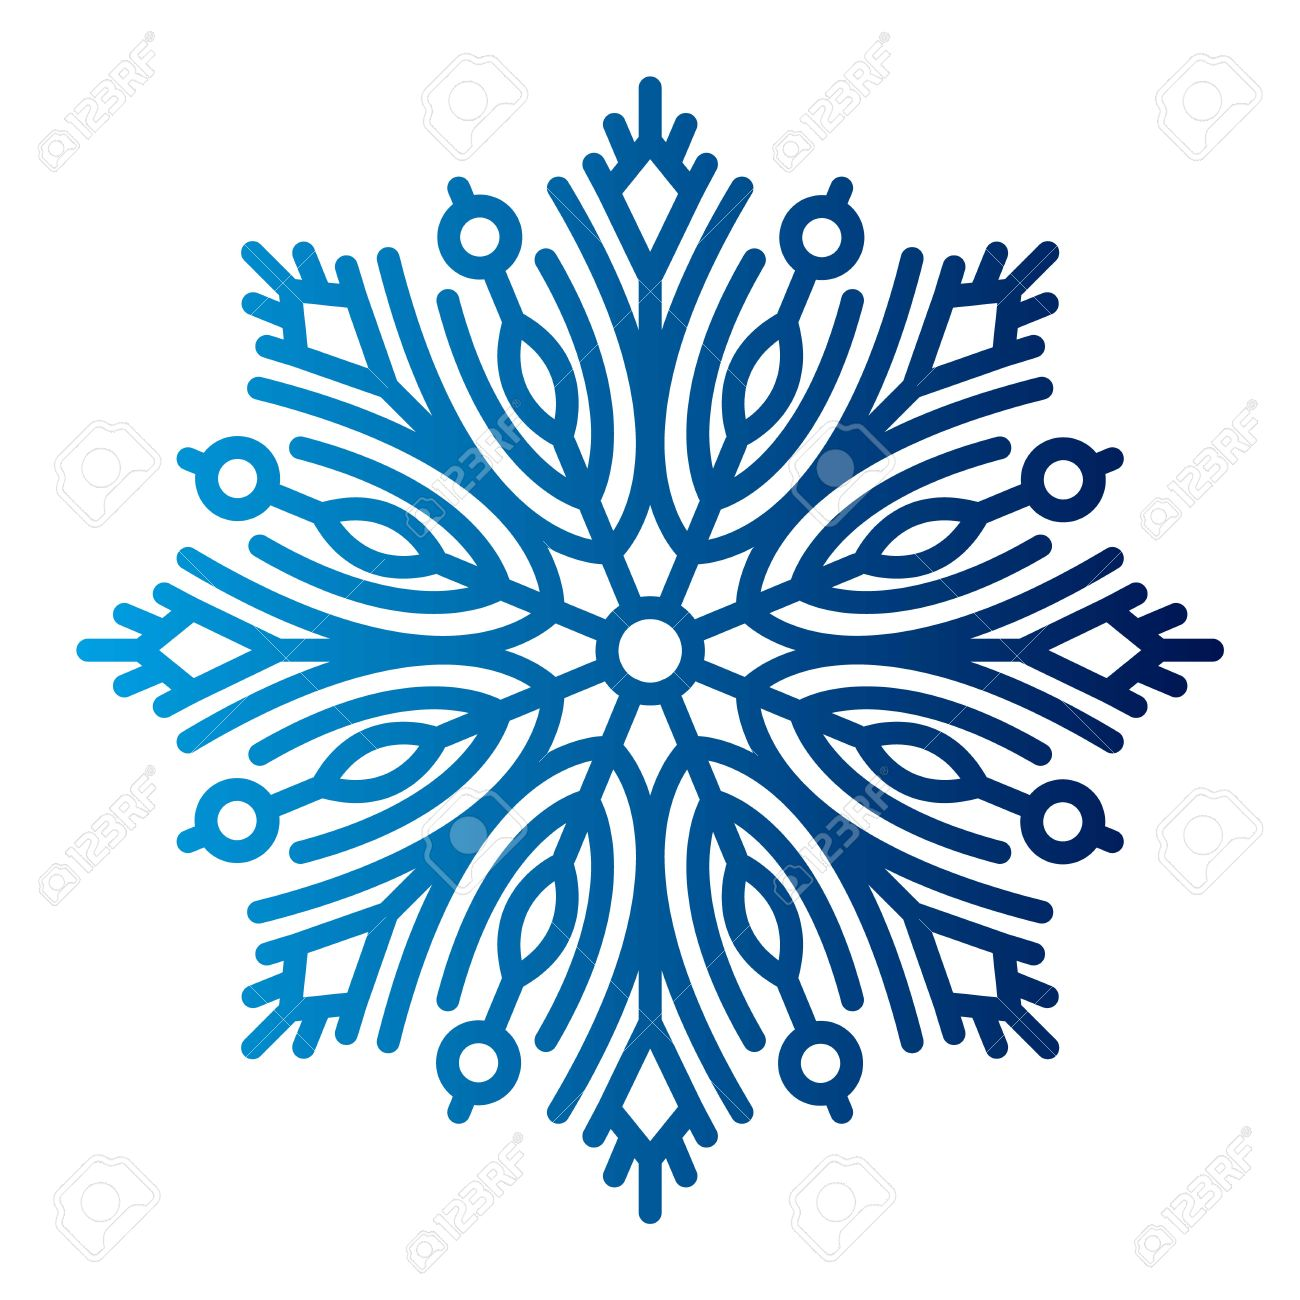 snowflake vector illustration and season nature winter sign symbol rh 123rf com free snowflake vector background free snowflake vector border